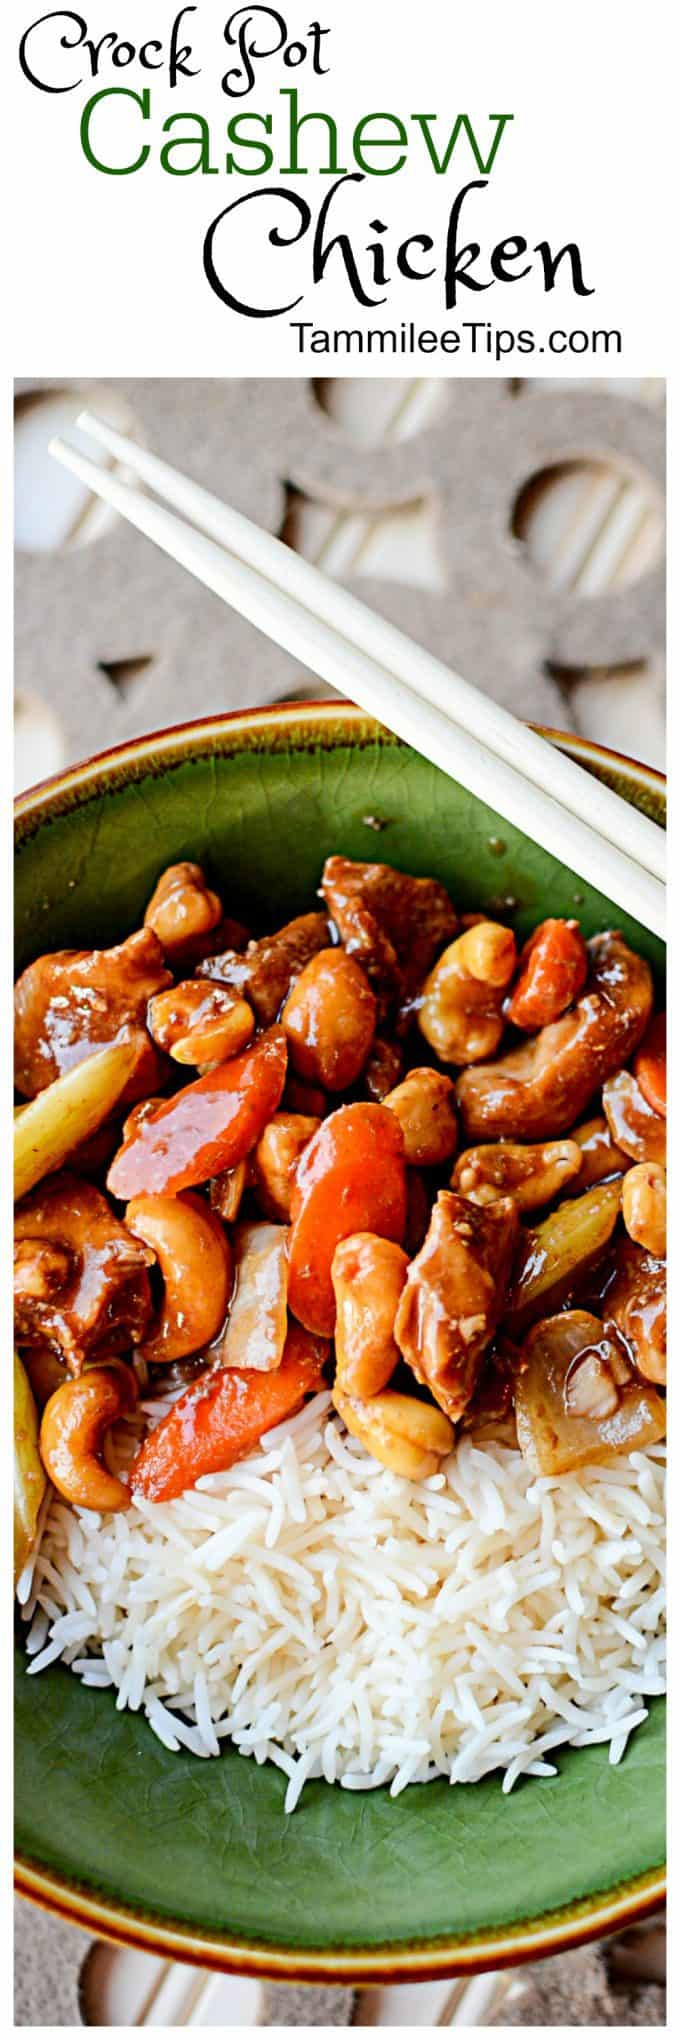 Easy Crock Pot Cashew Chicken Recipe! The slow cooker crockpot makes this recipes easy, healthy, and delicious! Not too spicy but you can easily make it spicier if you prefer. #crockpot #slowcooker #recipe #chicken #comfortfood